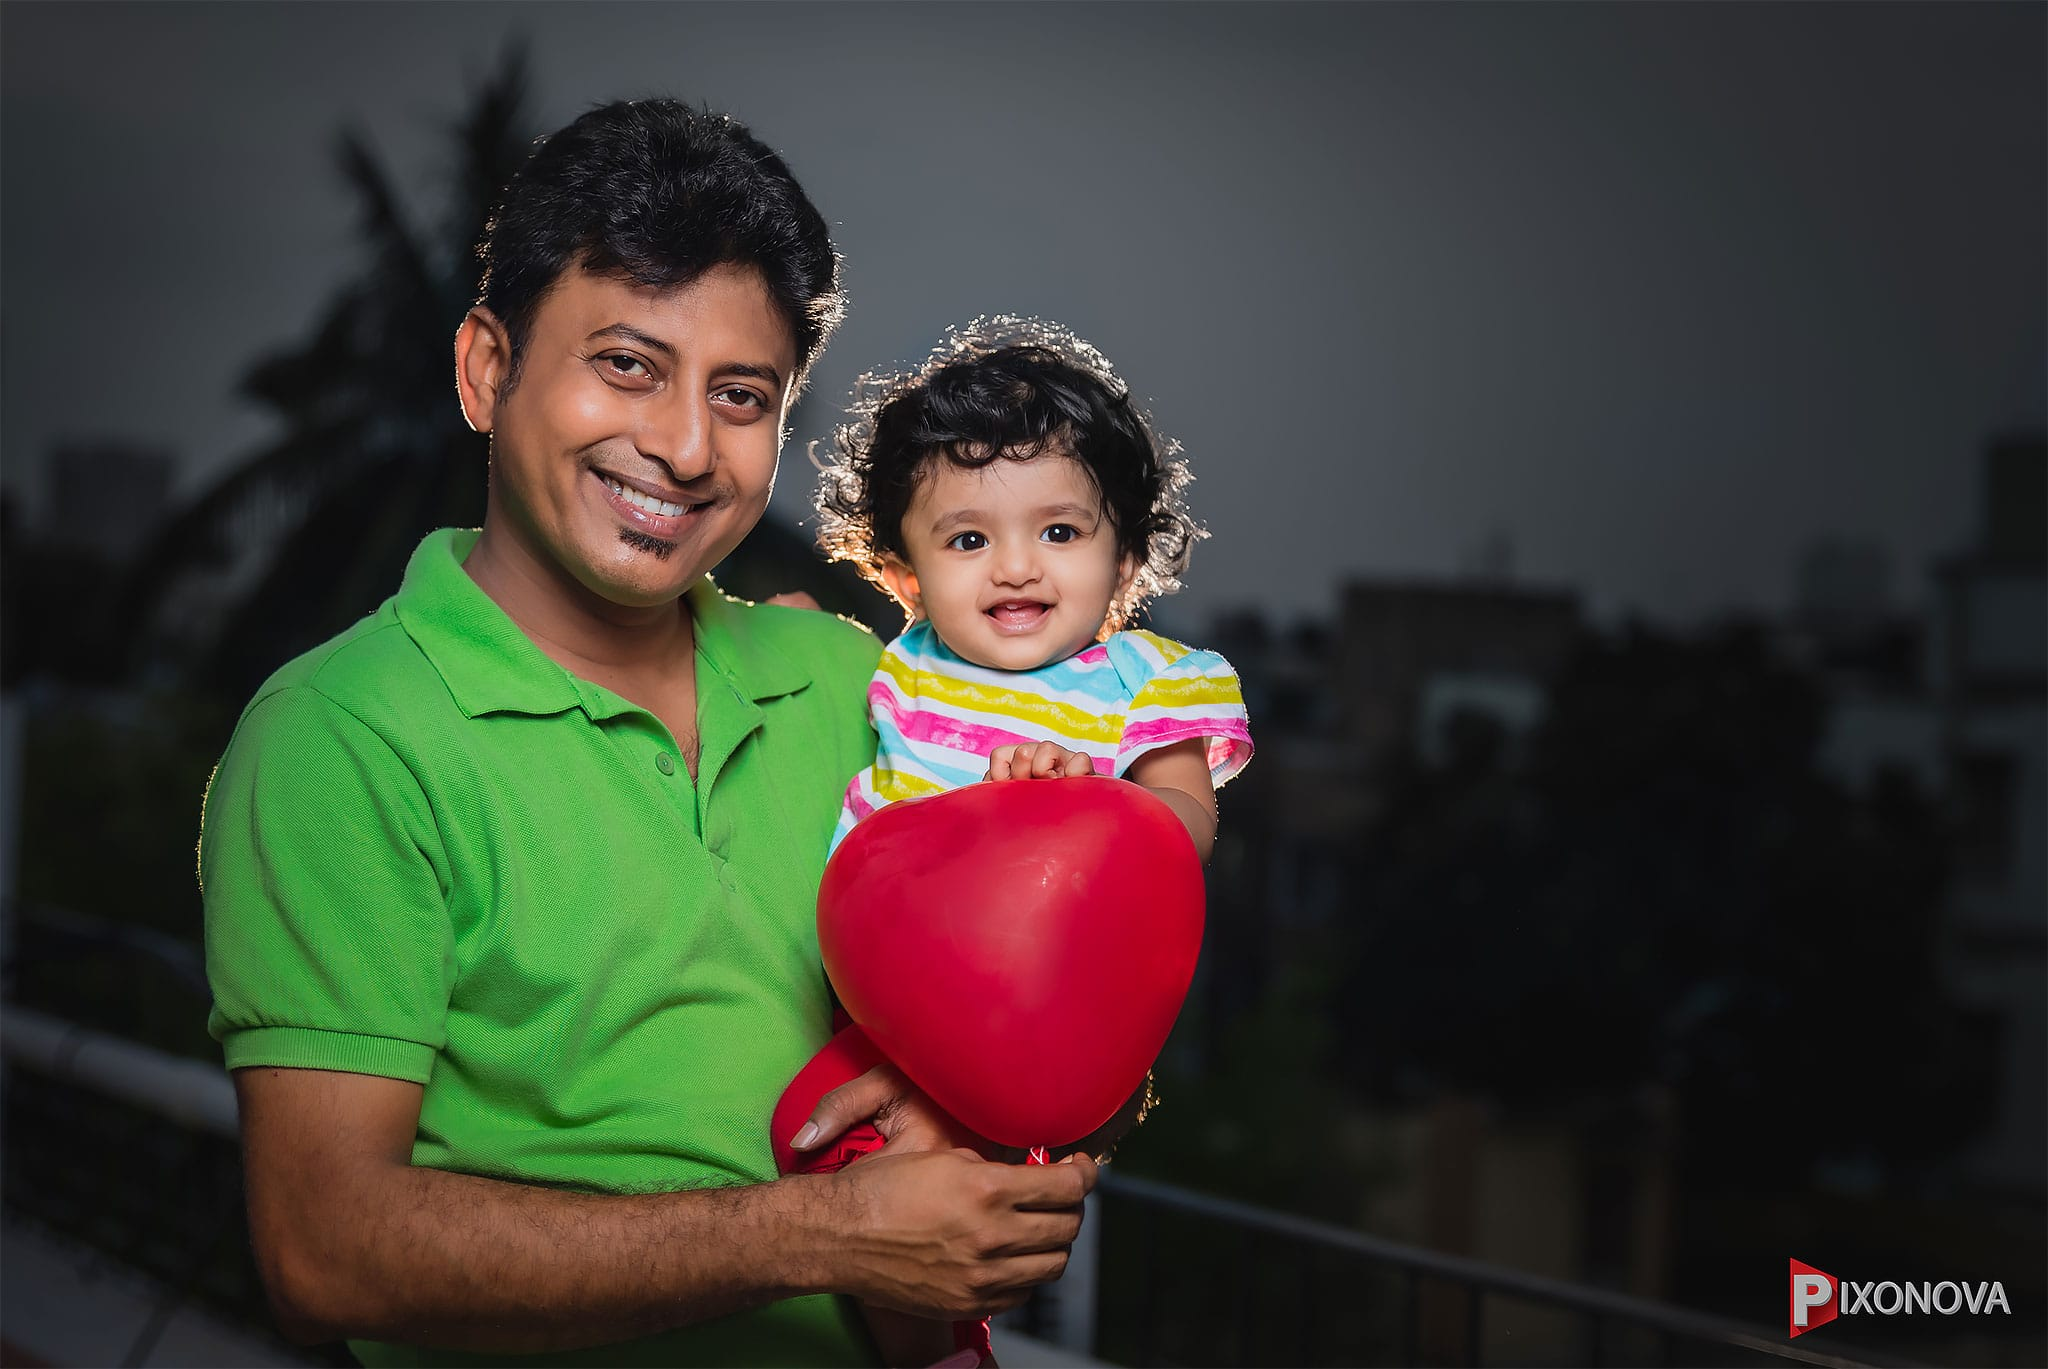 Sutirtha Sarkar with her baby smiling for the photo